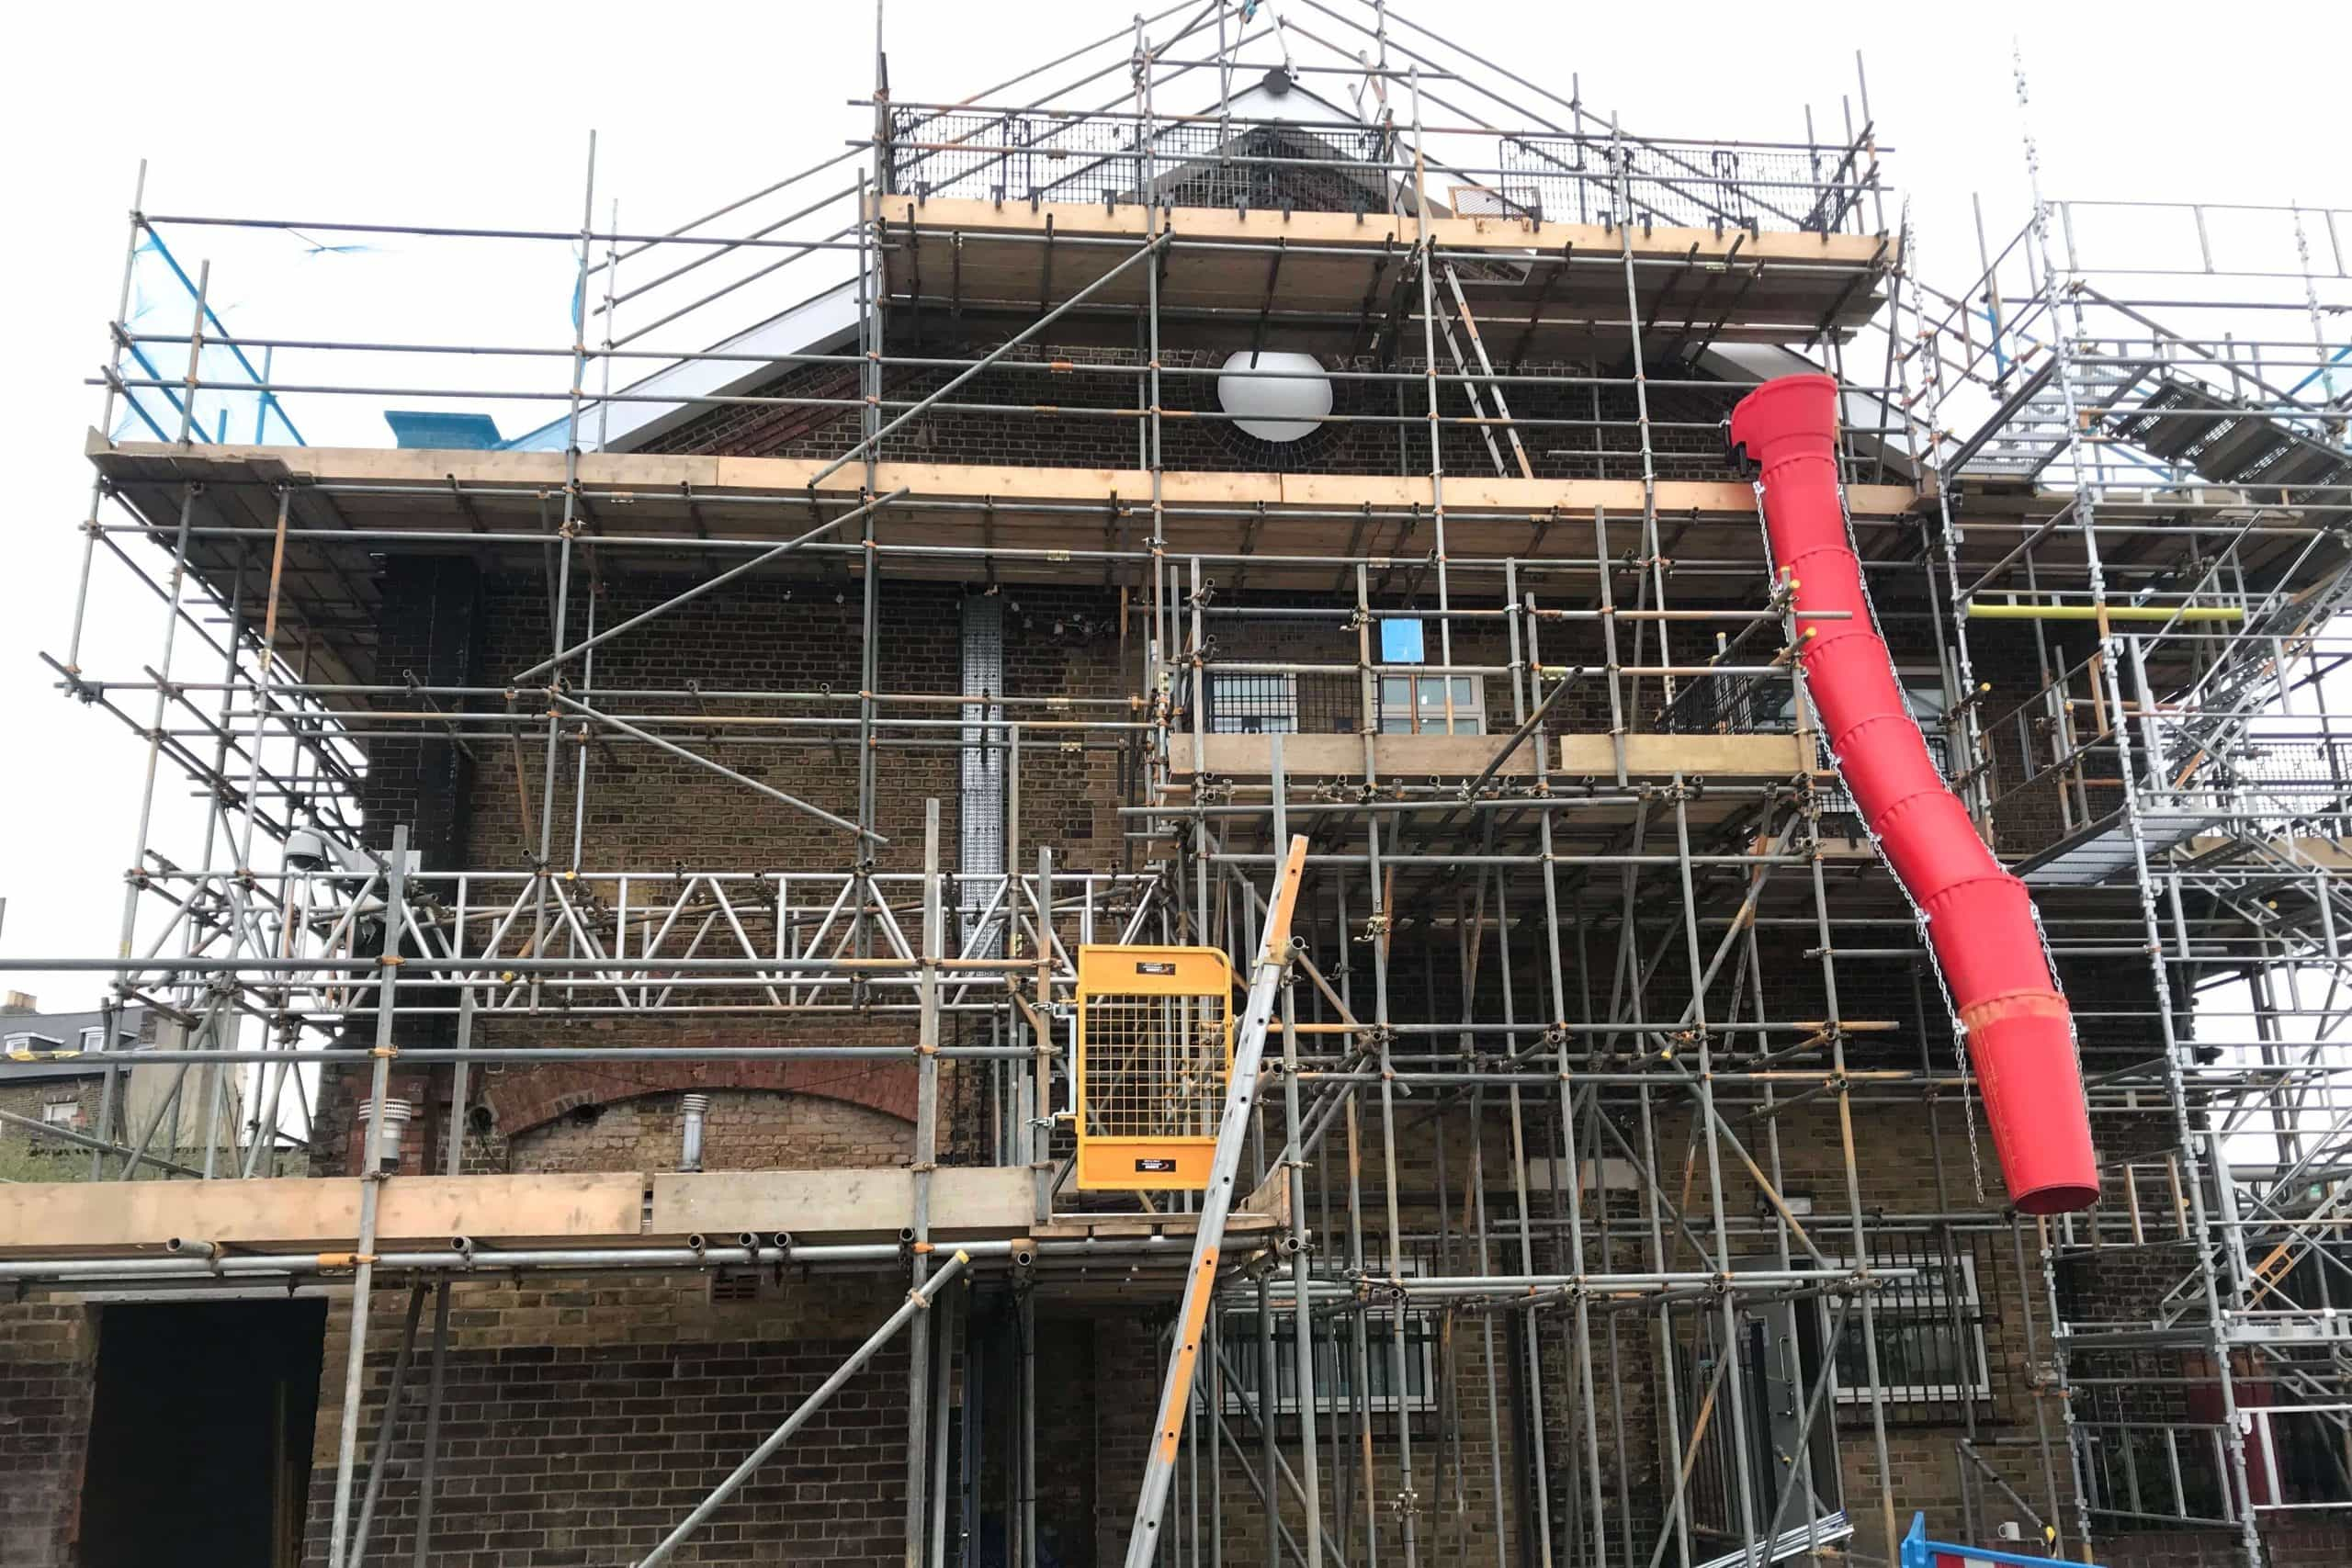 Norwood junction large commercial air conditioning solution by SubCool FM exterior of building with scaffolding